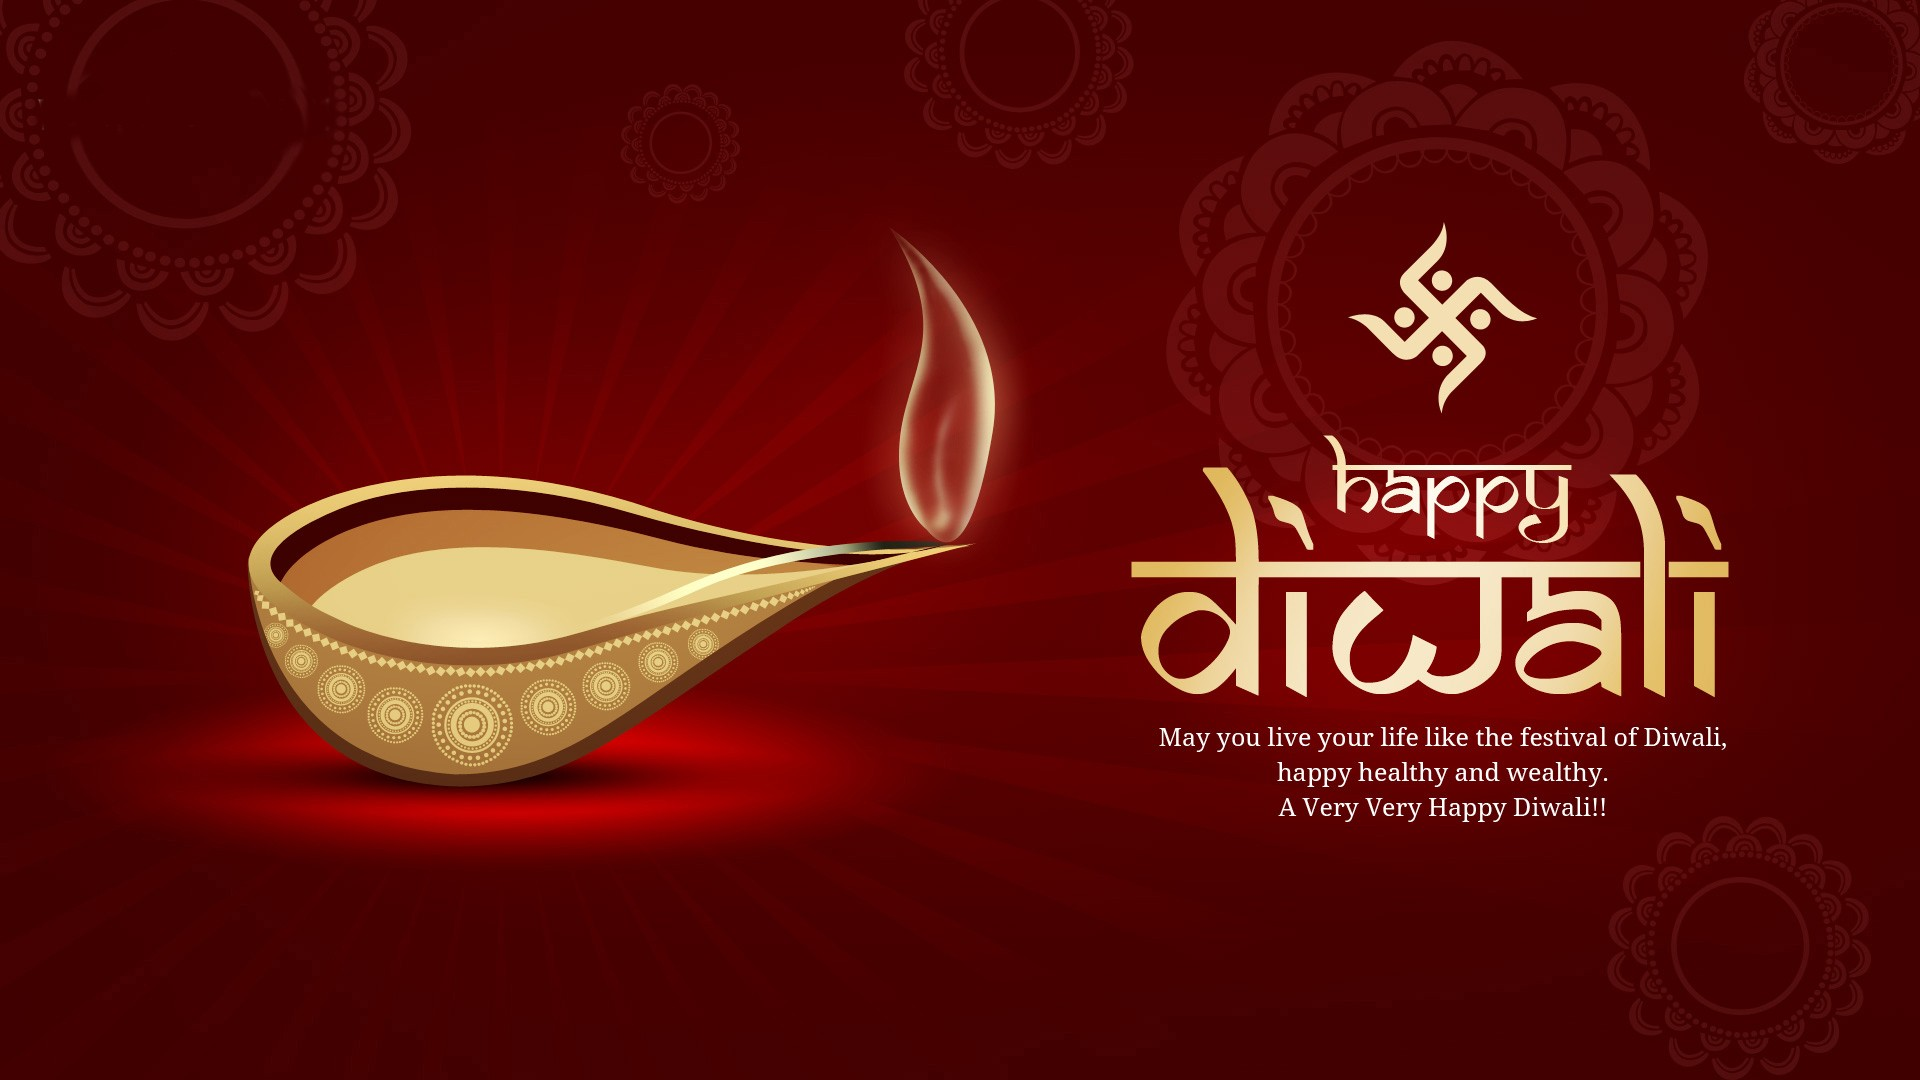 happy-diwali-deepak-hd-walls